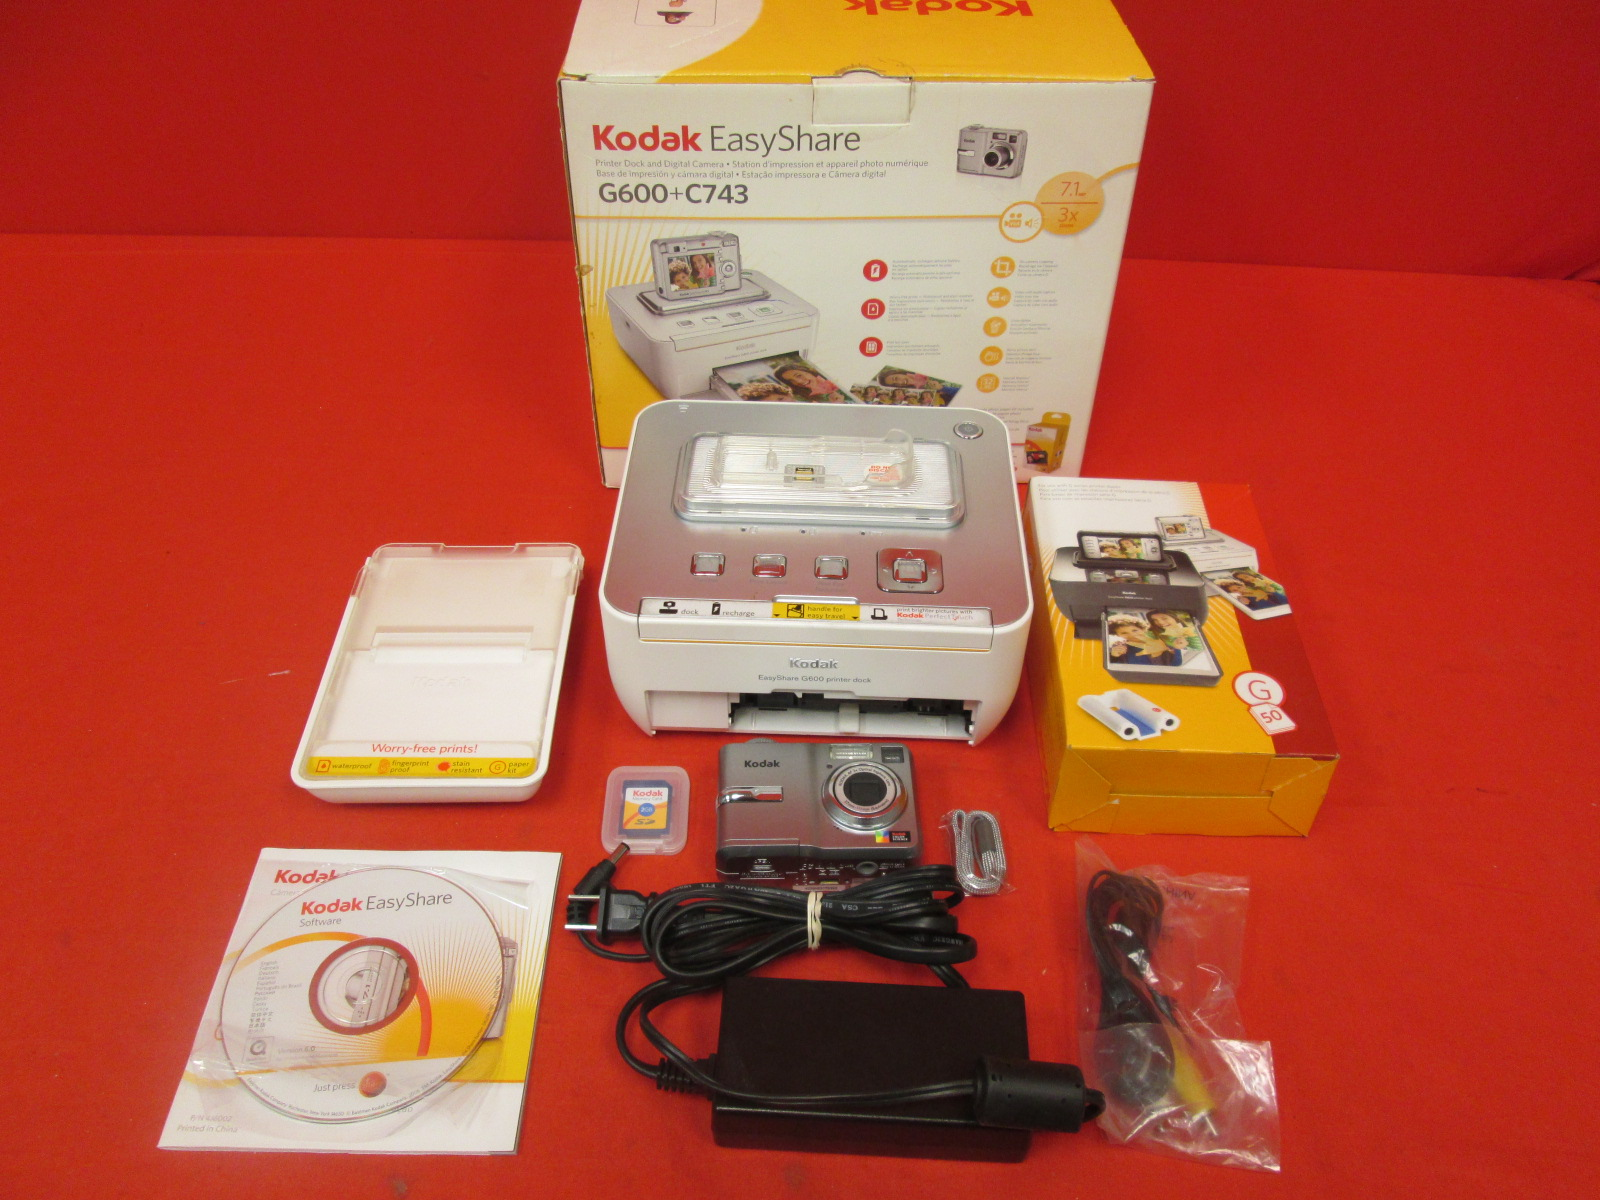 Kodak Easyshare C743 7 MP Digital Camera With 3XOPTICAL Zoom With G600